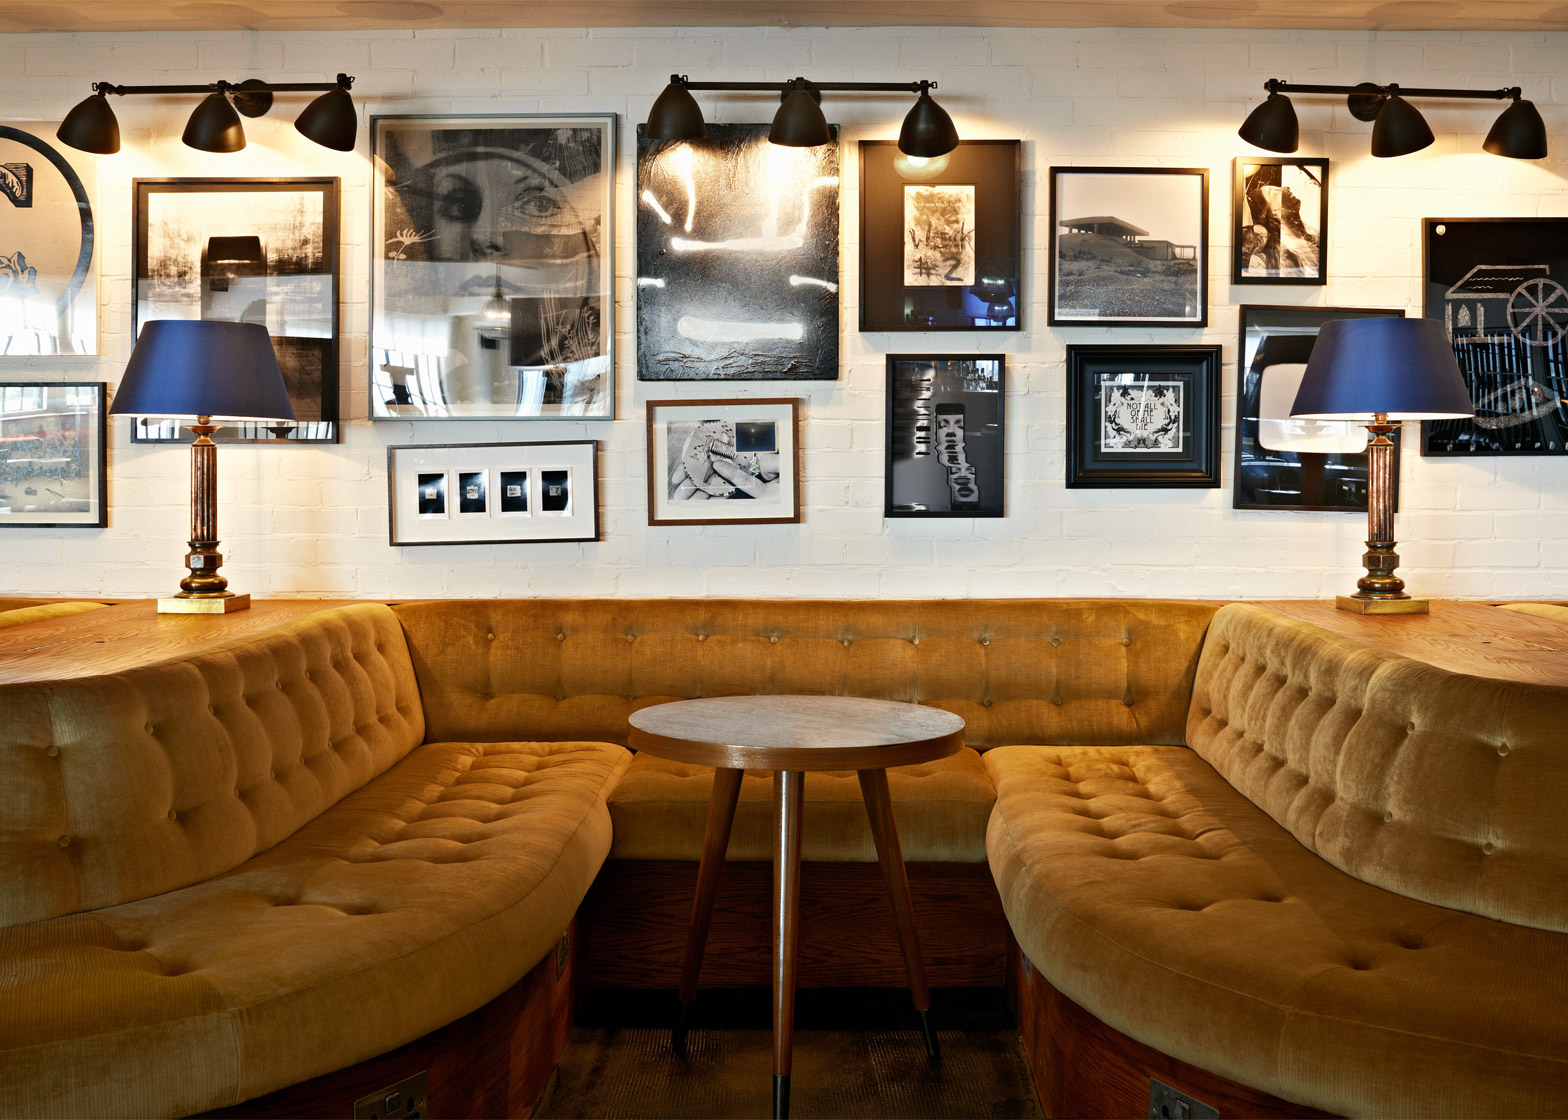 ... Shoreditch House, London, England